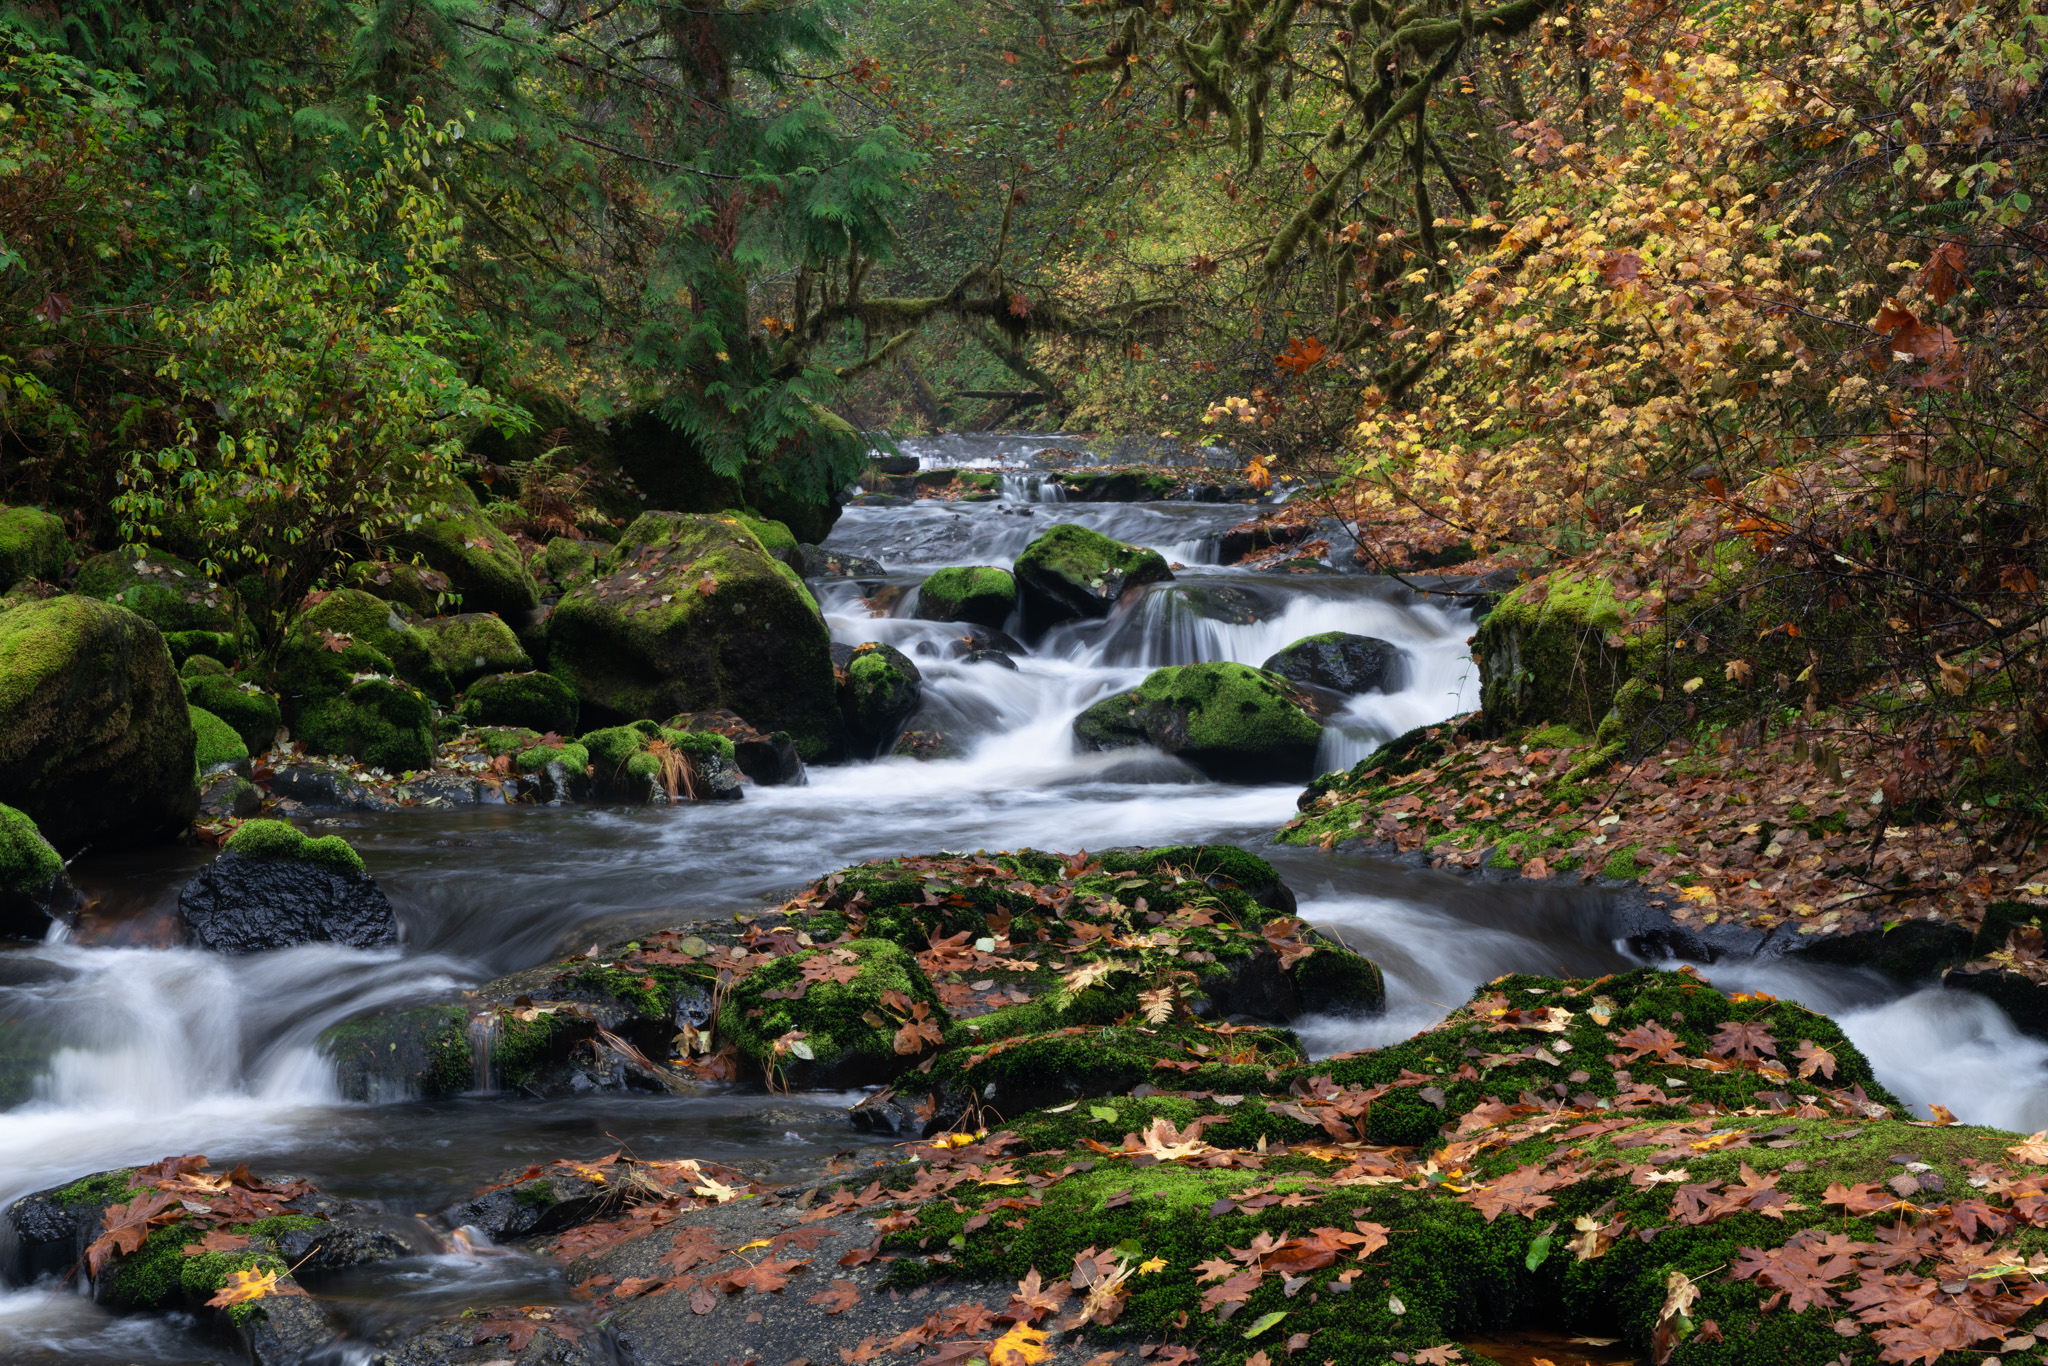 Sweet Creek, Oregon.  Contact Scott to commission a print or license this image.